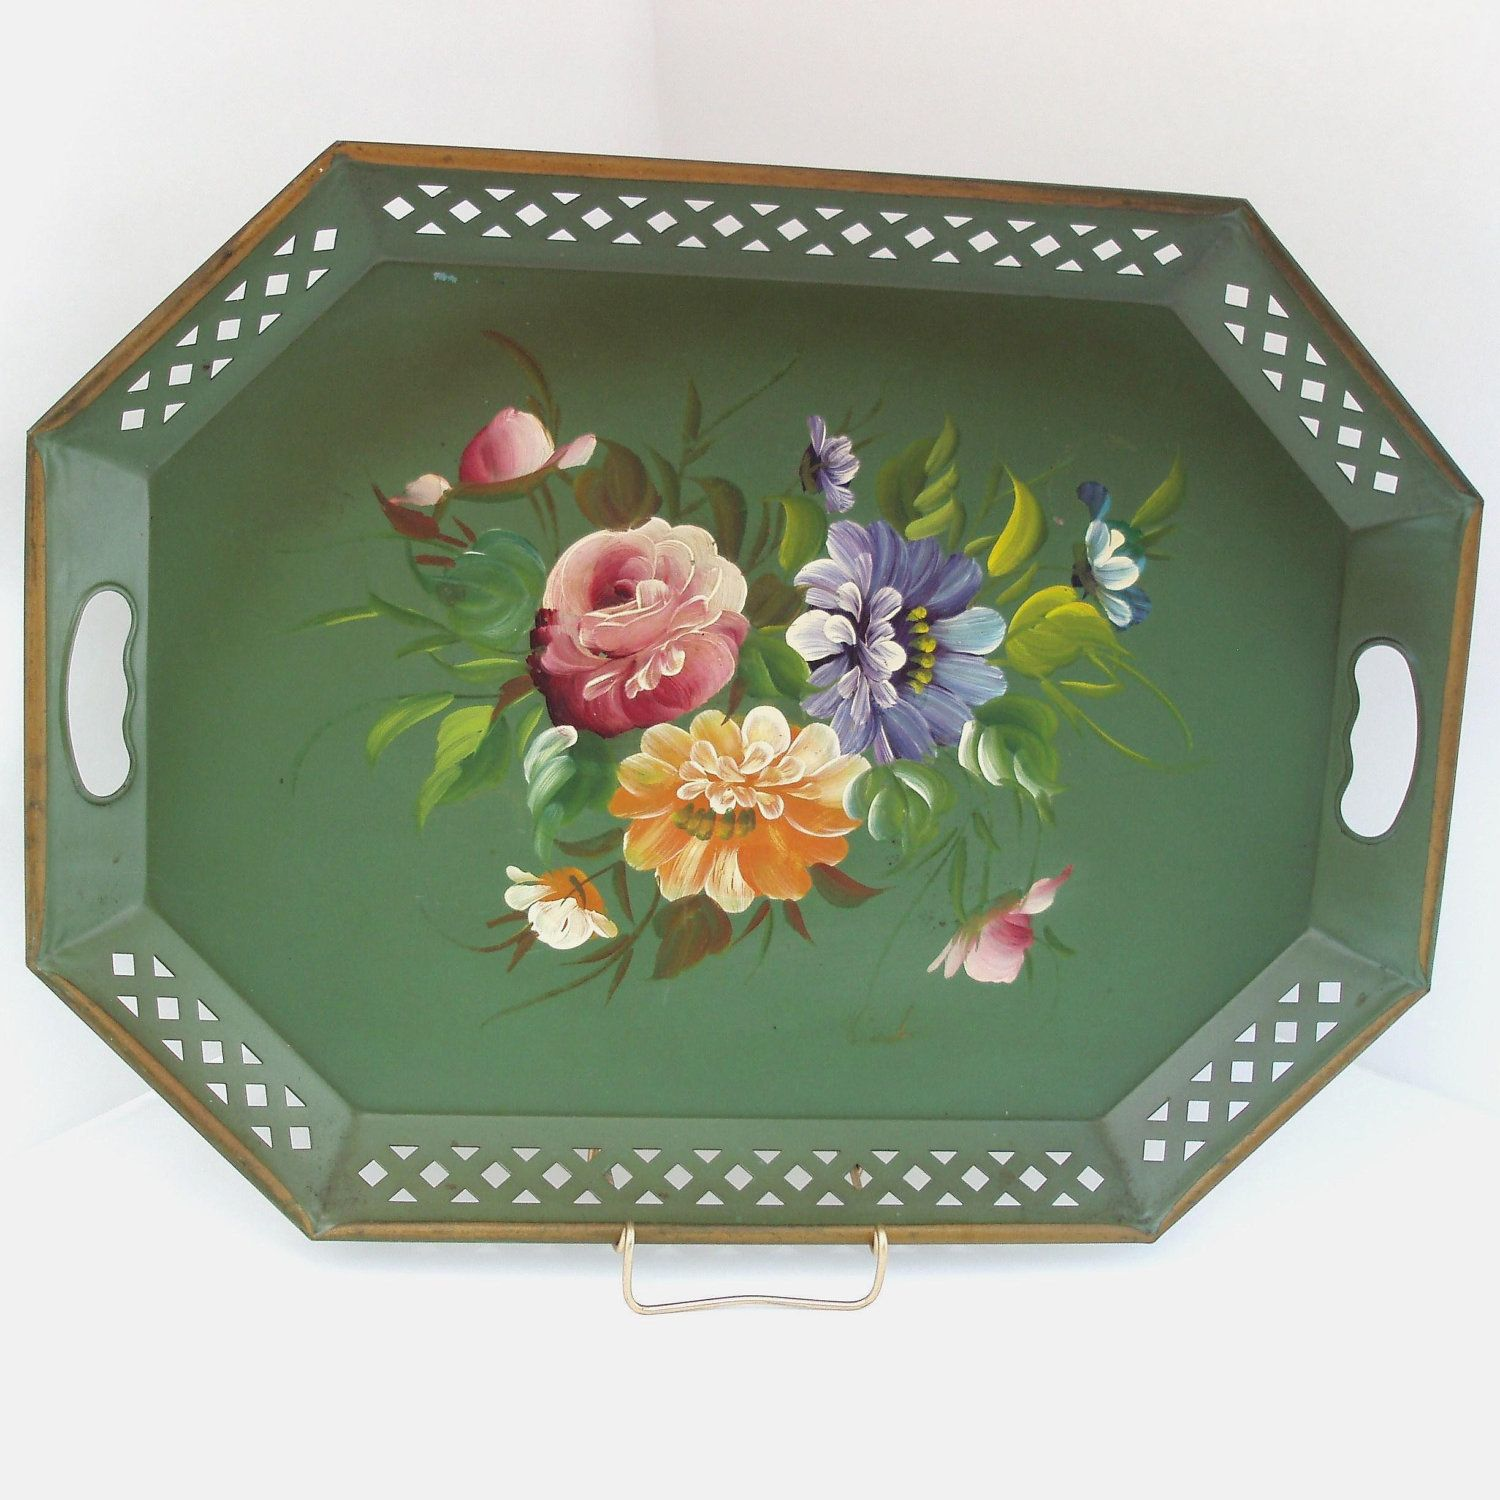 Vintage Large Tole Tray, Toleware Tray, 1940s Green Floral Hand Painted NashcoTray, Shabby Chic / Cottage Decor. $74.50, via Etsy.